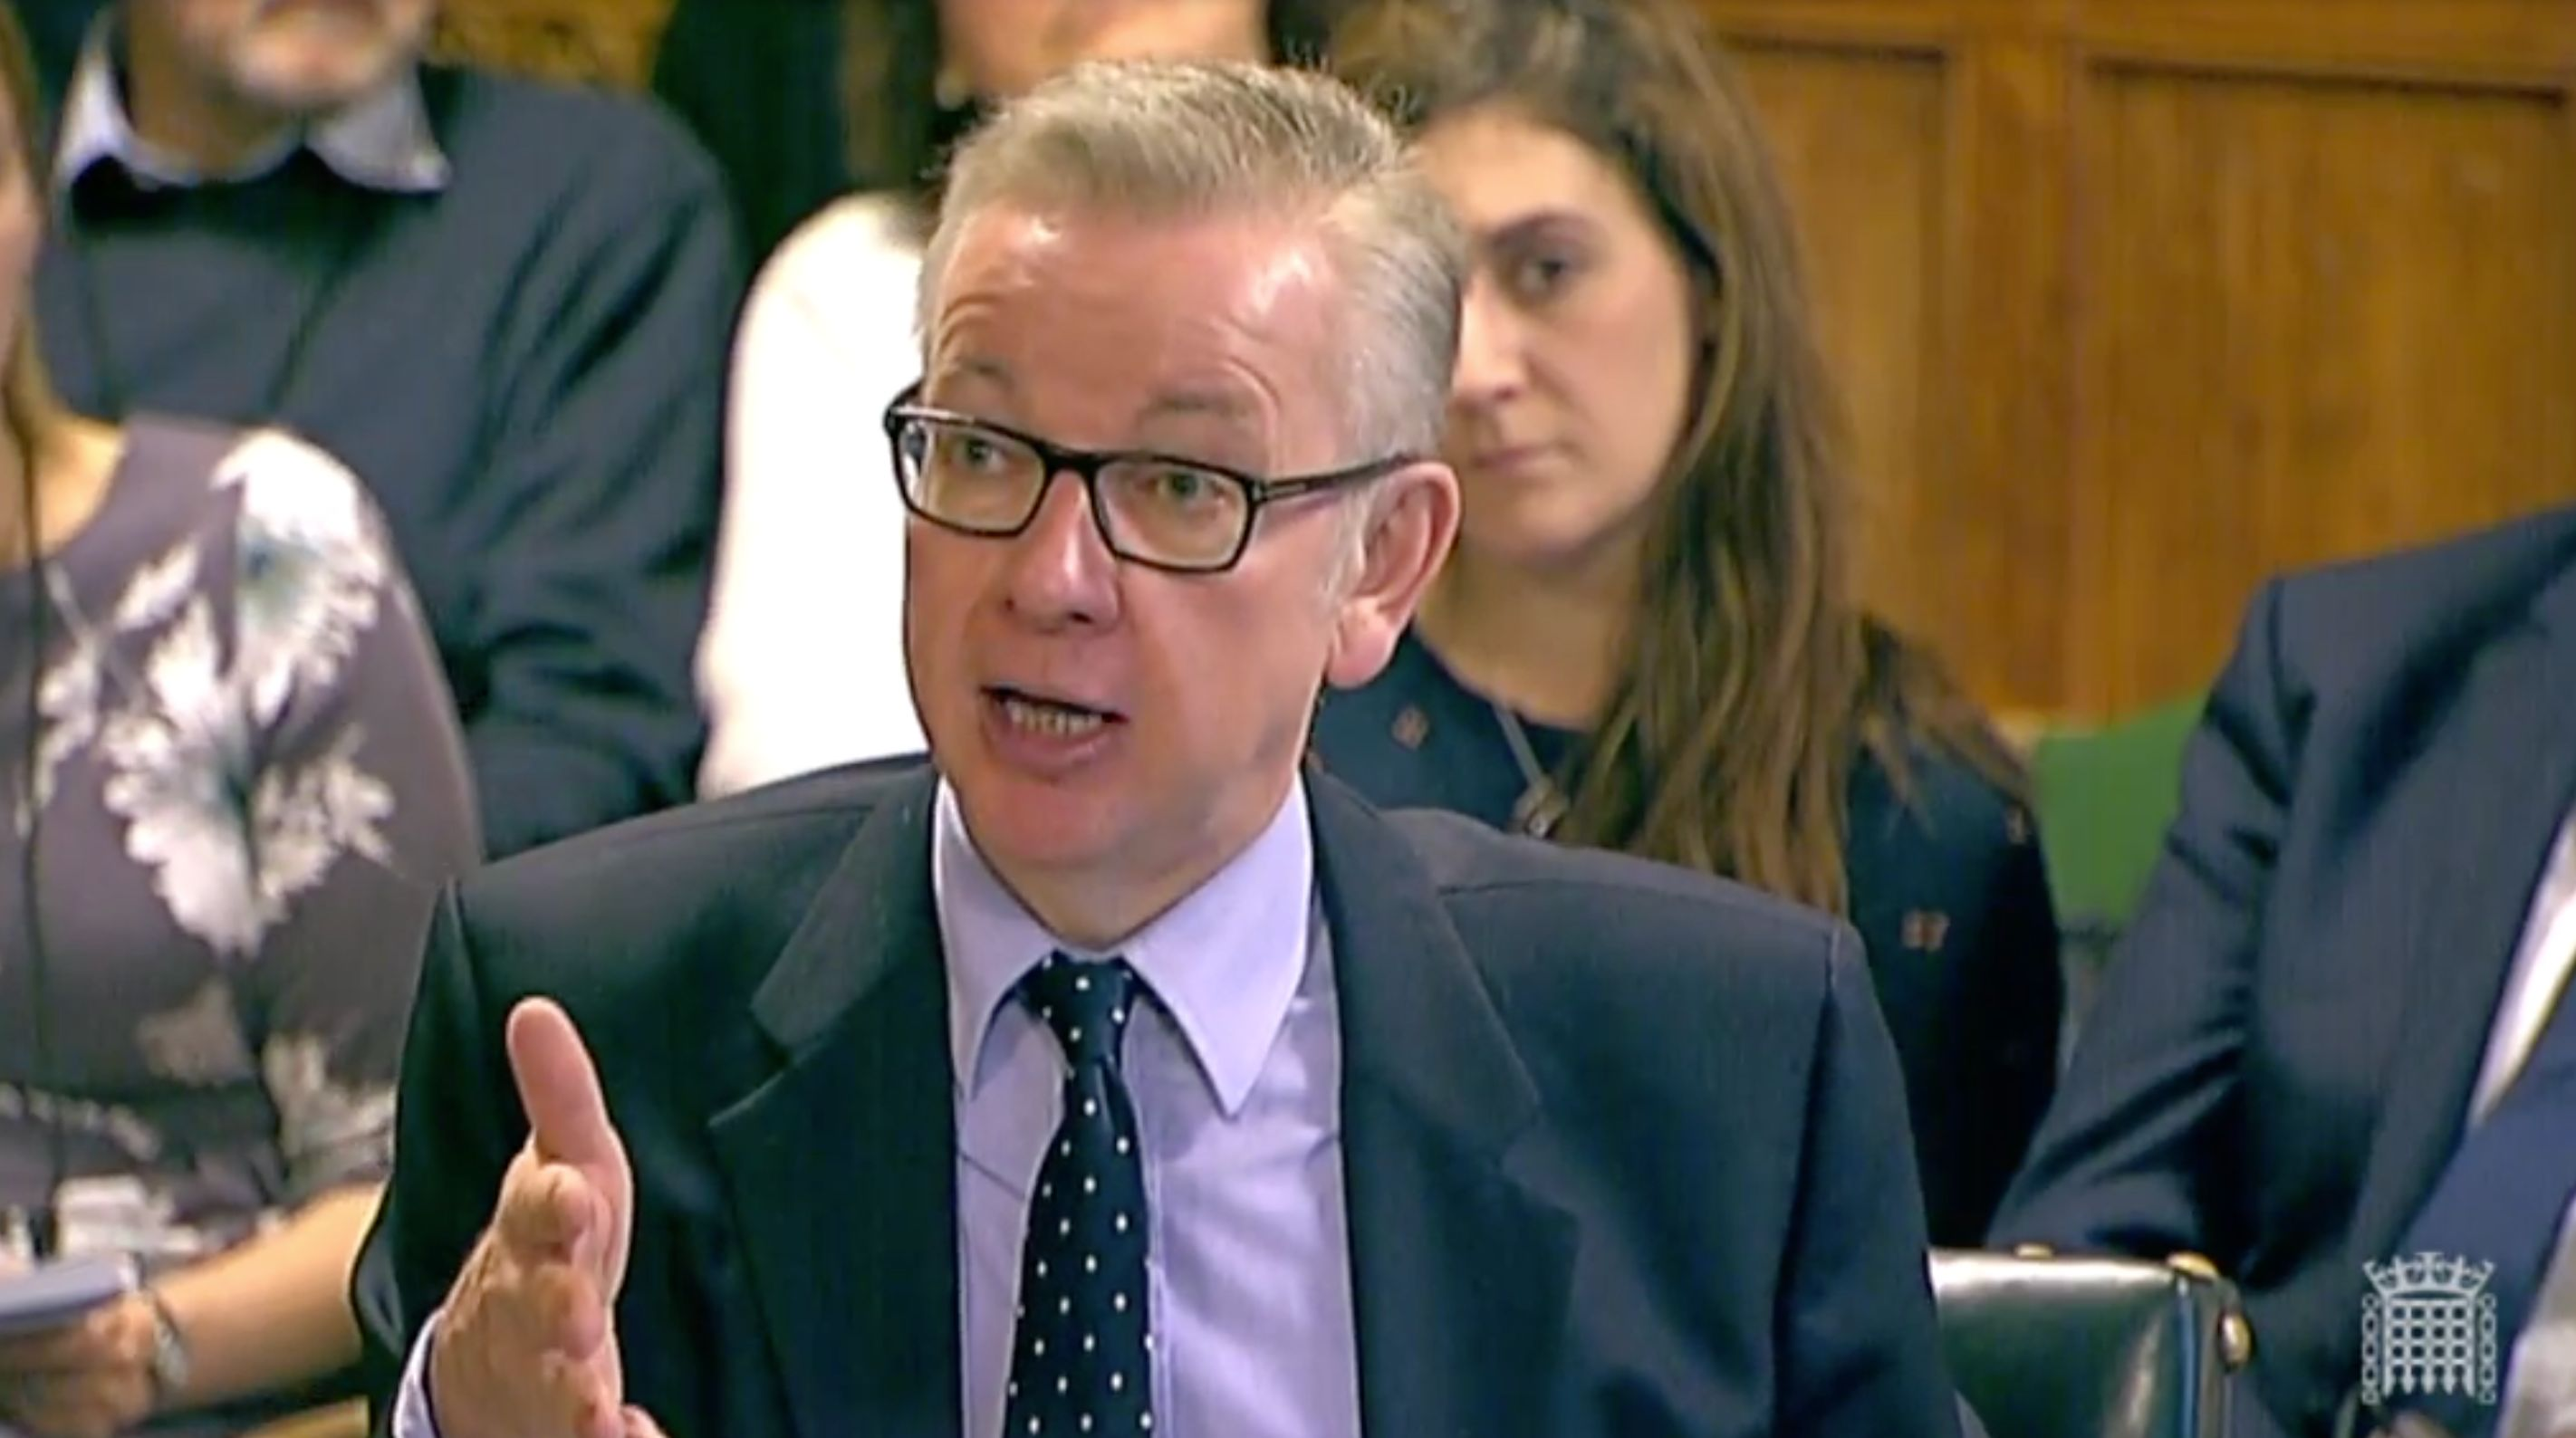 Michael Gove Blasted By 'Very Angry' Tory MP Over Future Of Fishing Industry After